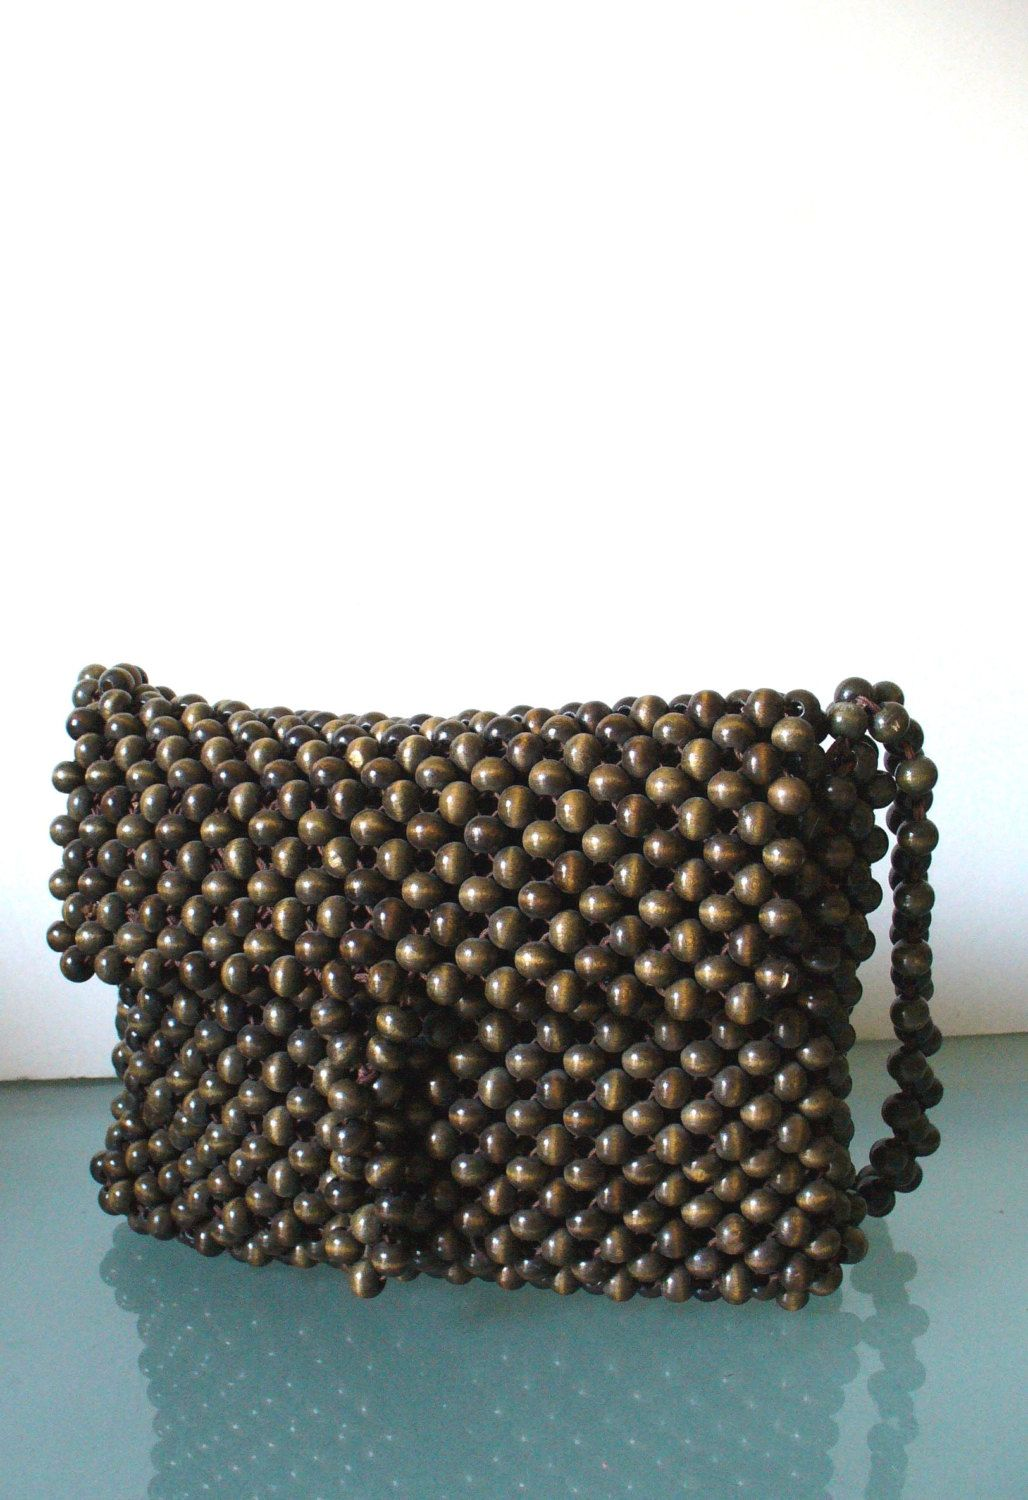 cce4f4ecf715 Vintage Walborg Wood Bead Handmade Bag by TheOldBagOnline on Etsy. Find  this Pin and more on vintage purses ...